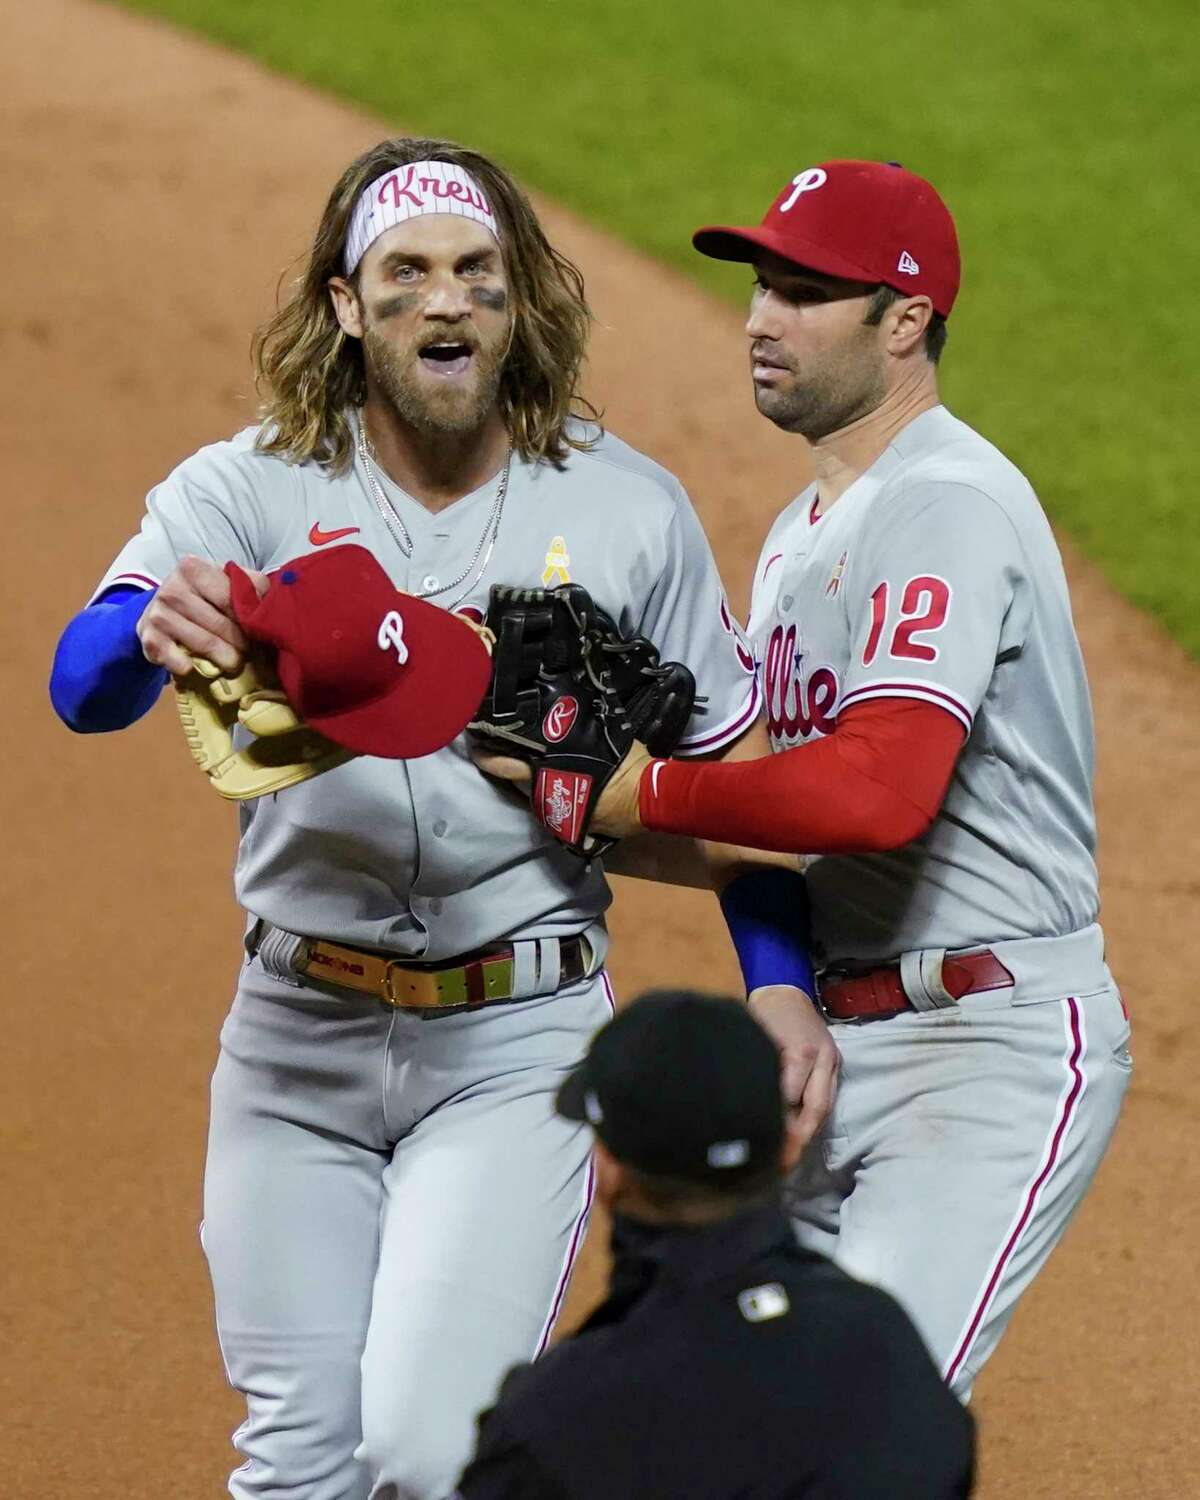 Philadelphia Phillies' Bryce Harper, left, reacts next to Neil Walker (12) after umpire Roberto Ortiz, below, threw him out of the team's baseball game against the New York Mets during the fifth inning Saturday, Sept. 5, 2020, in New York. (AP Photo/John Minchillo)